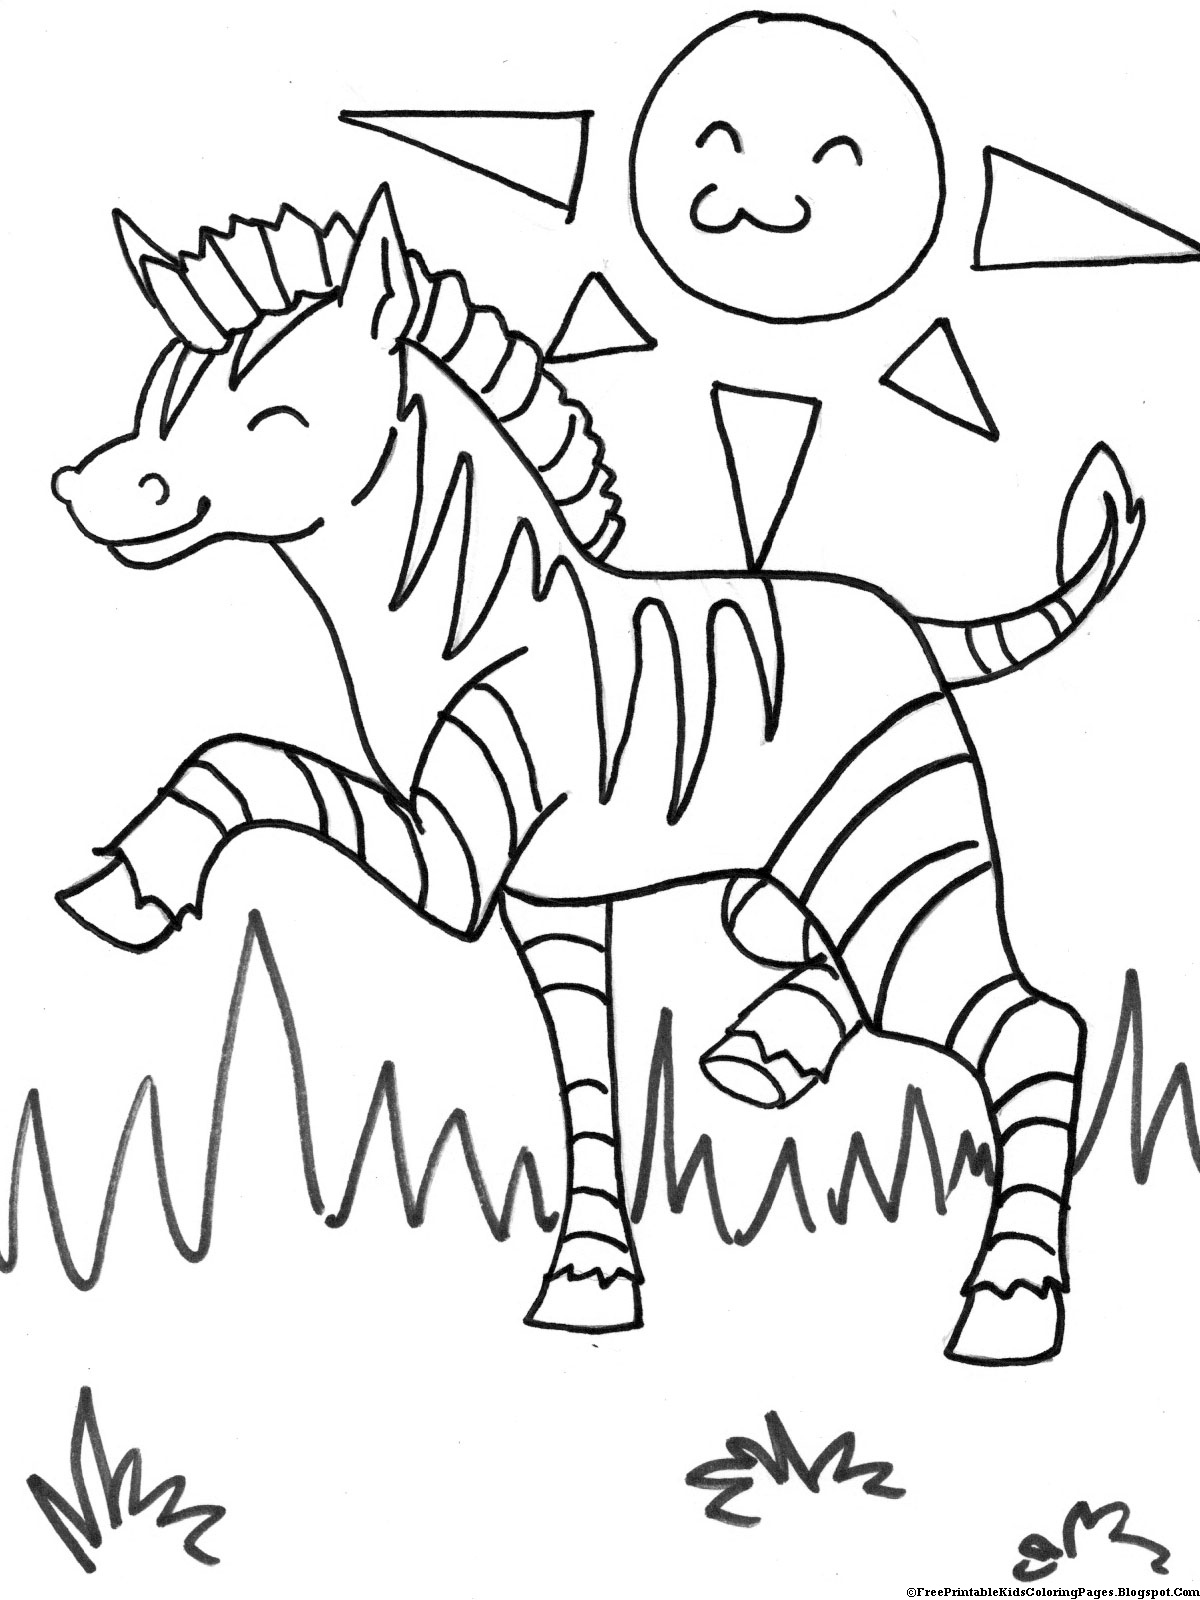 free printable zoo coloring pages free printable zoo coloring pages for kids coloring zoo printable free pages